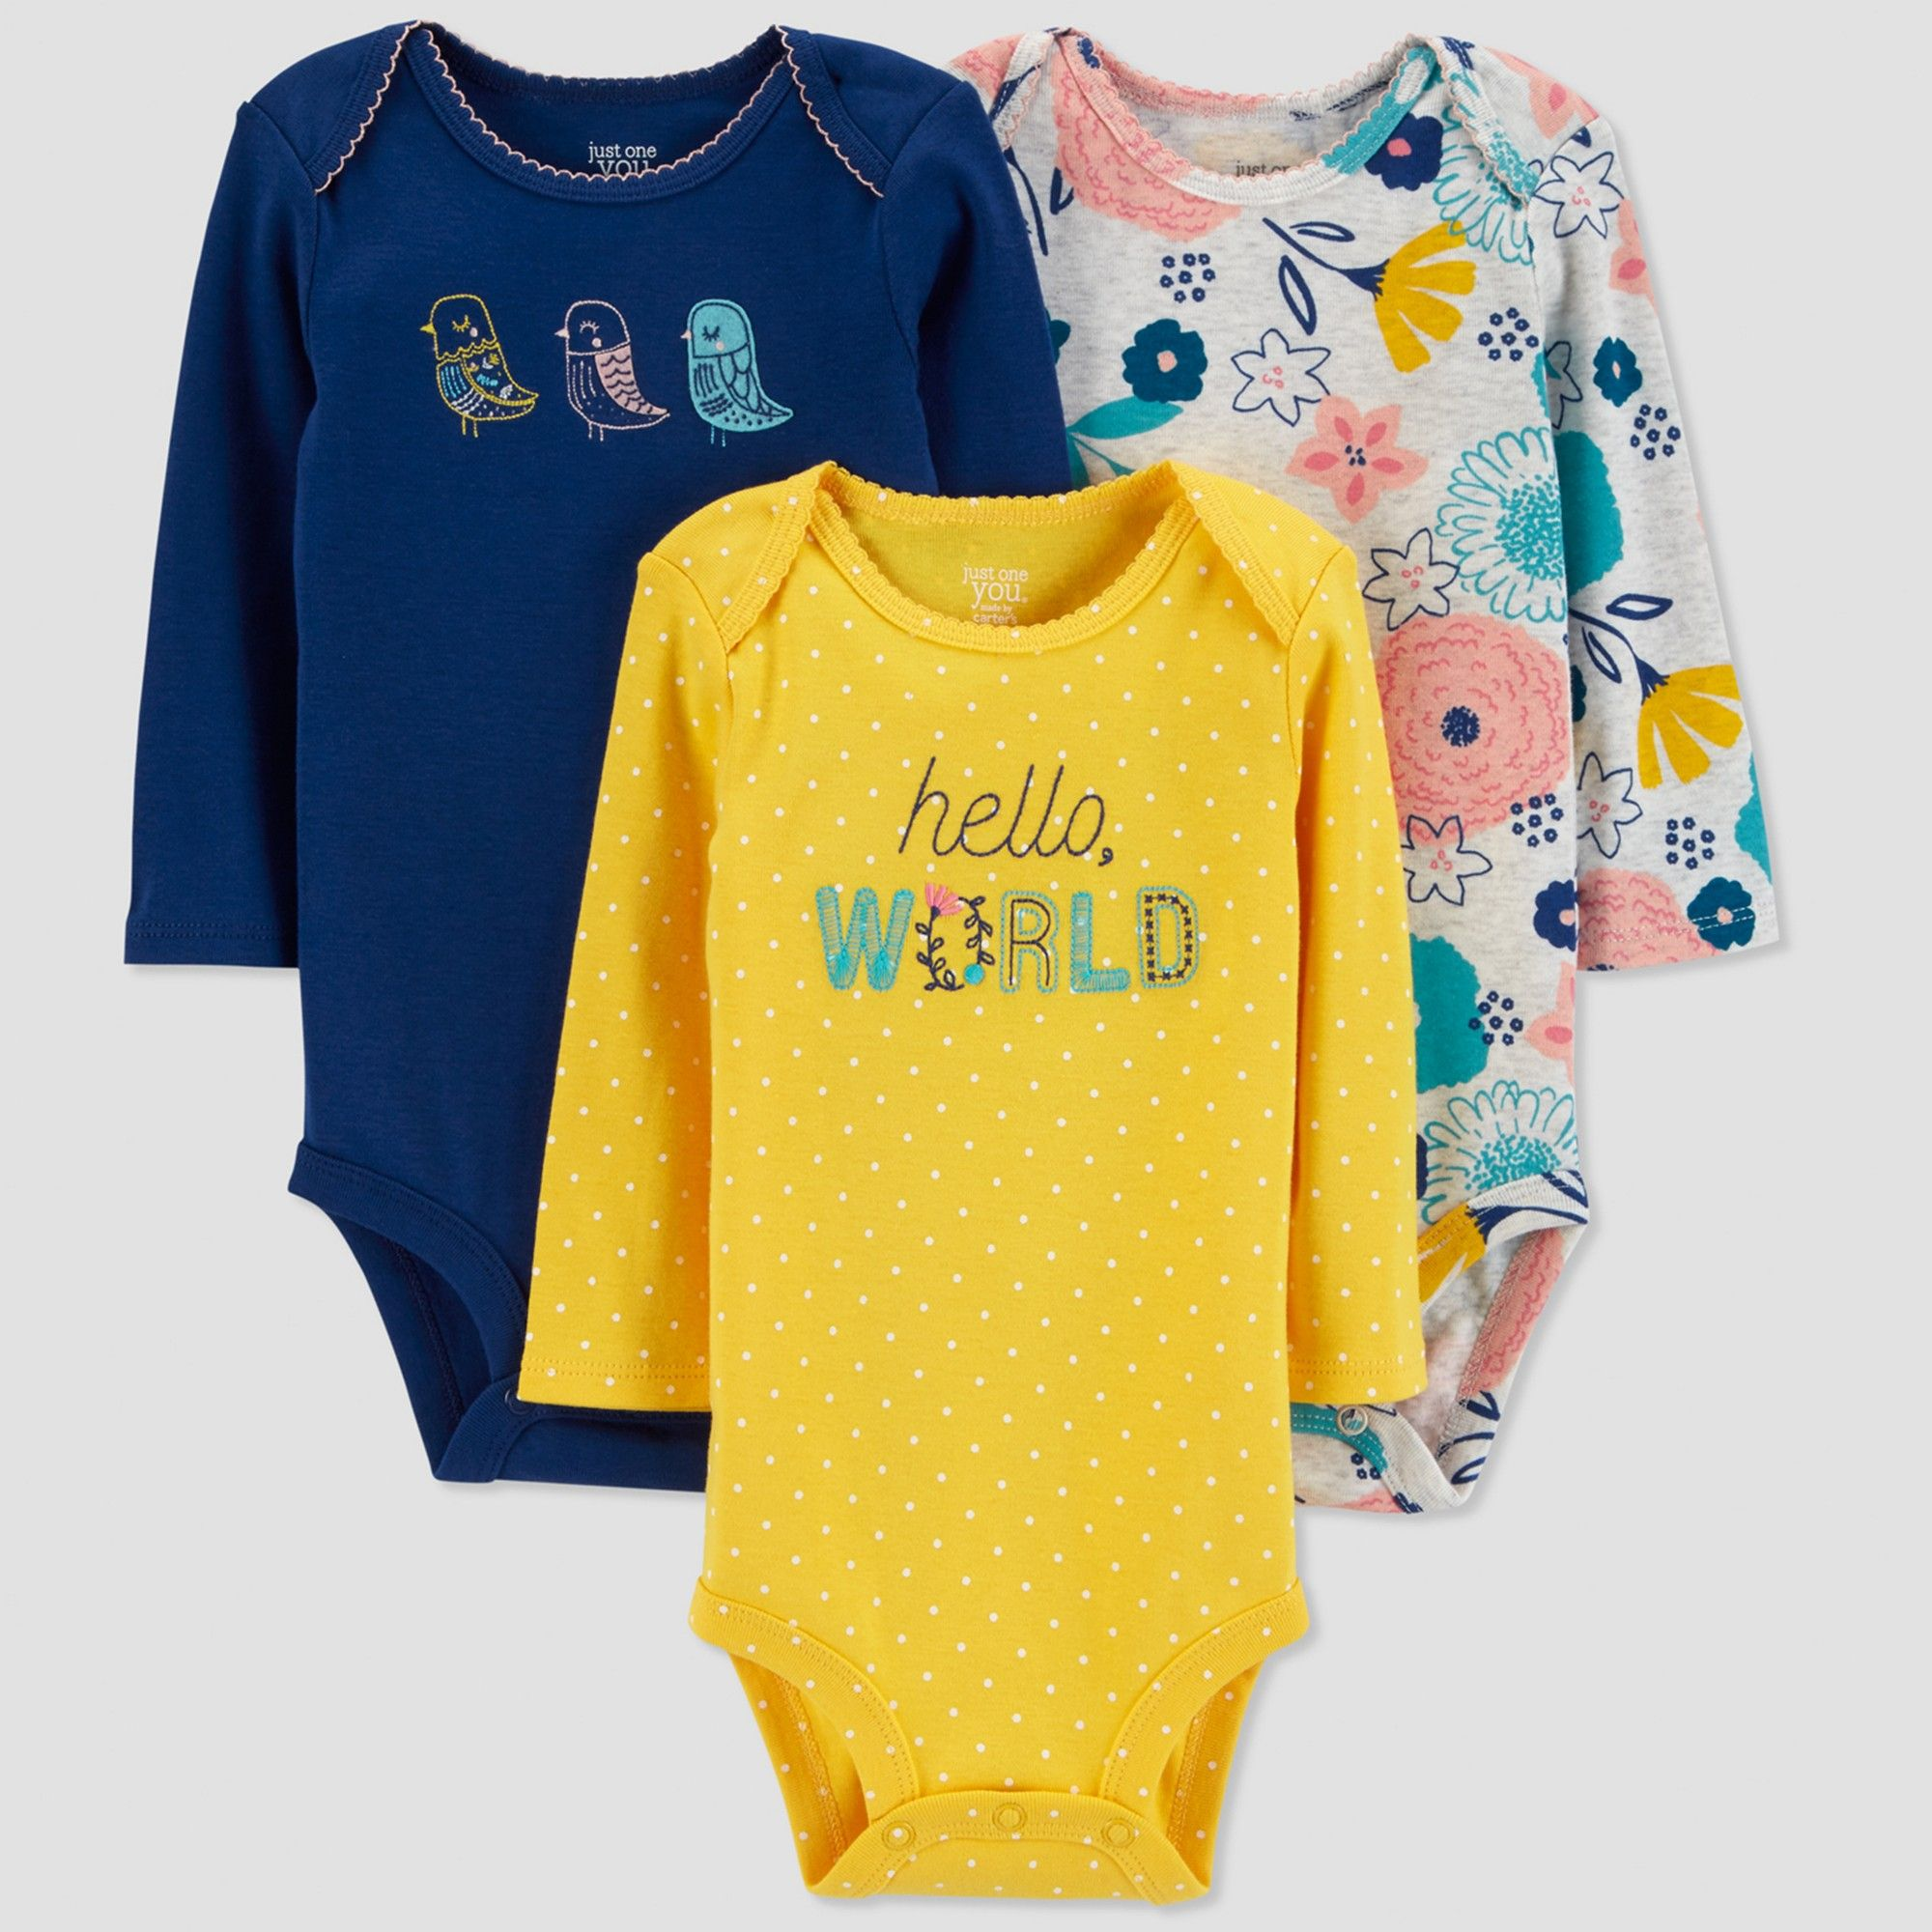 6d93b599c Baby Girls' 3pk Hello World Bodysuit - Just One You made by carter's  Yellow/Blue 9M